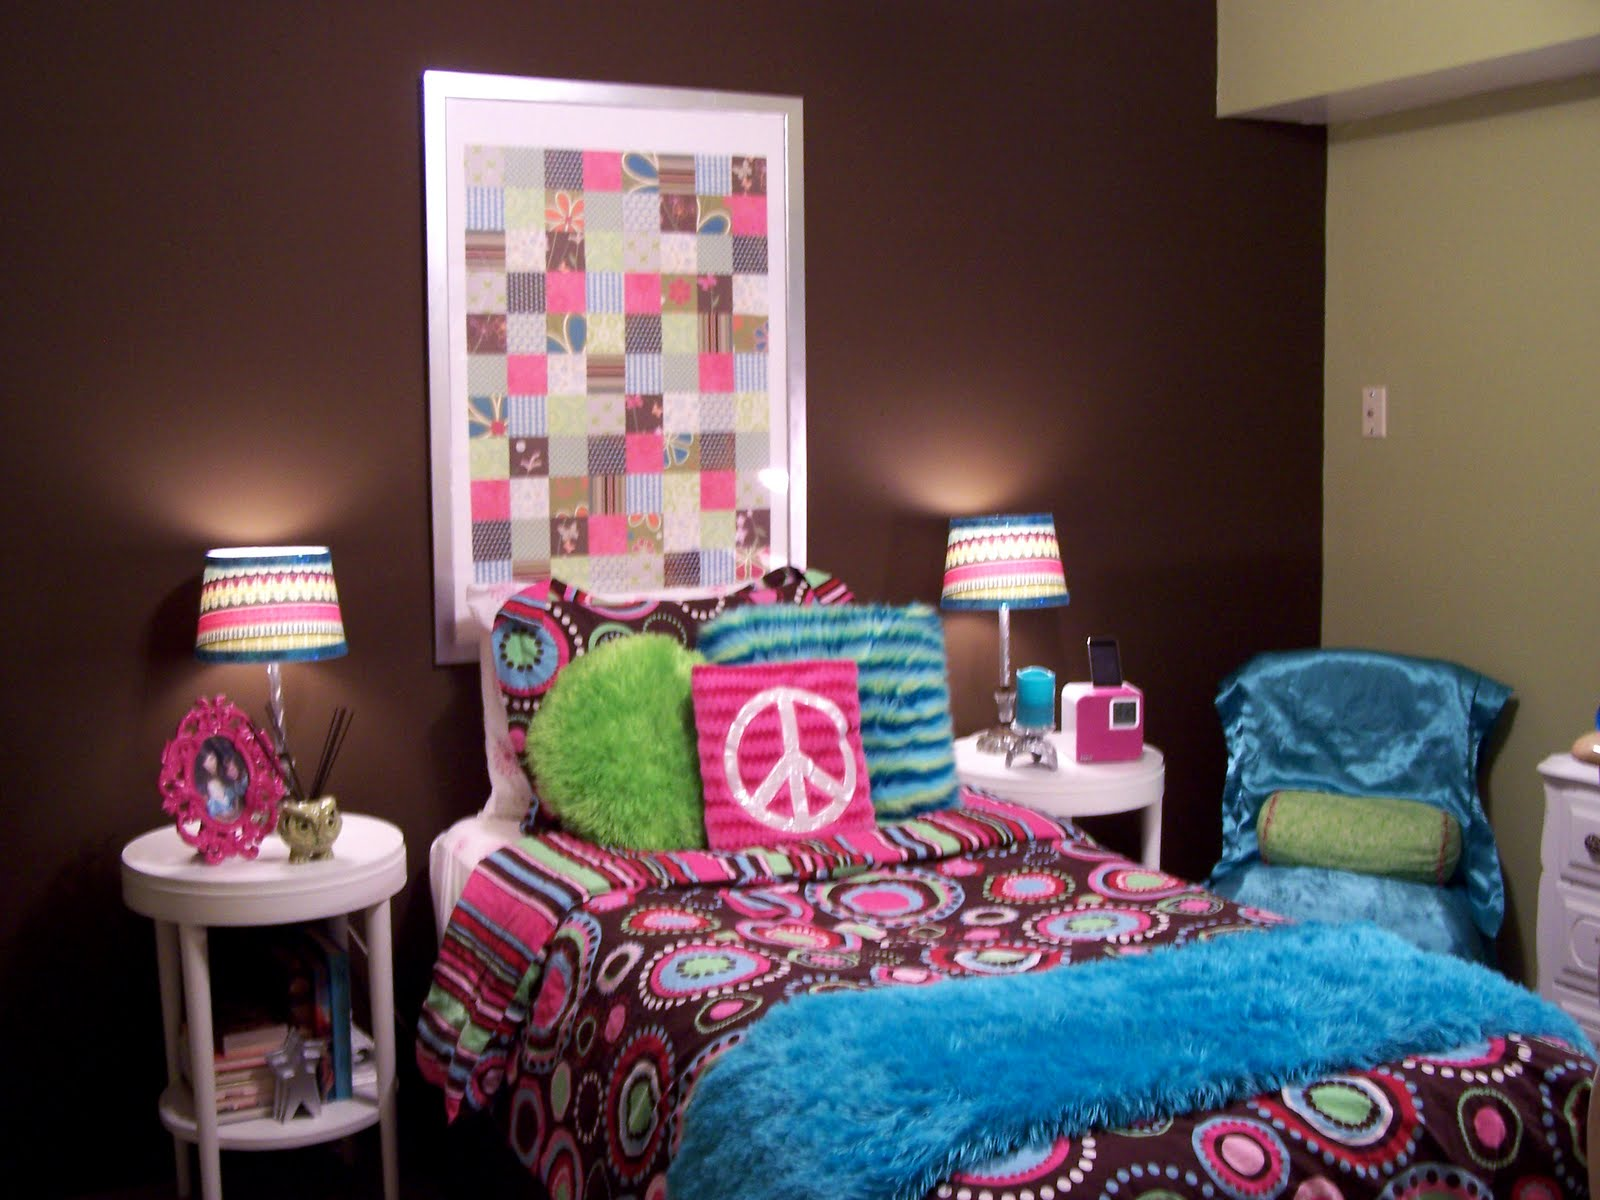 Peace Bedroom Ideas Turn To Colors (View 5 of 18)